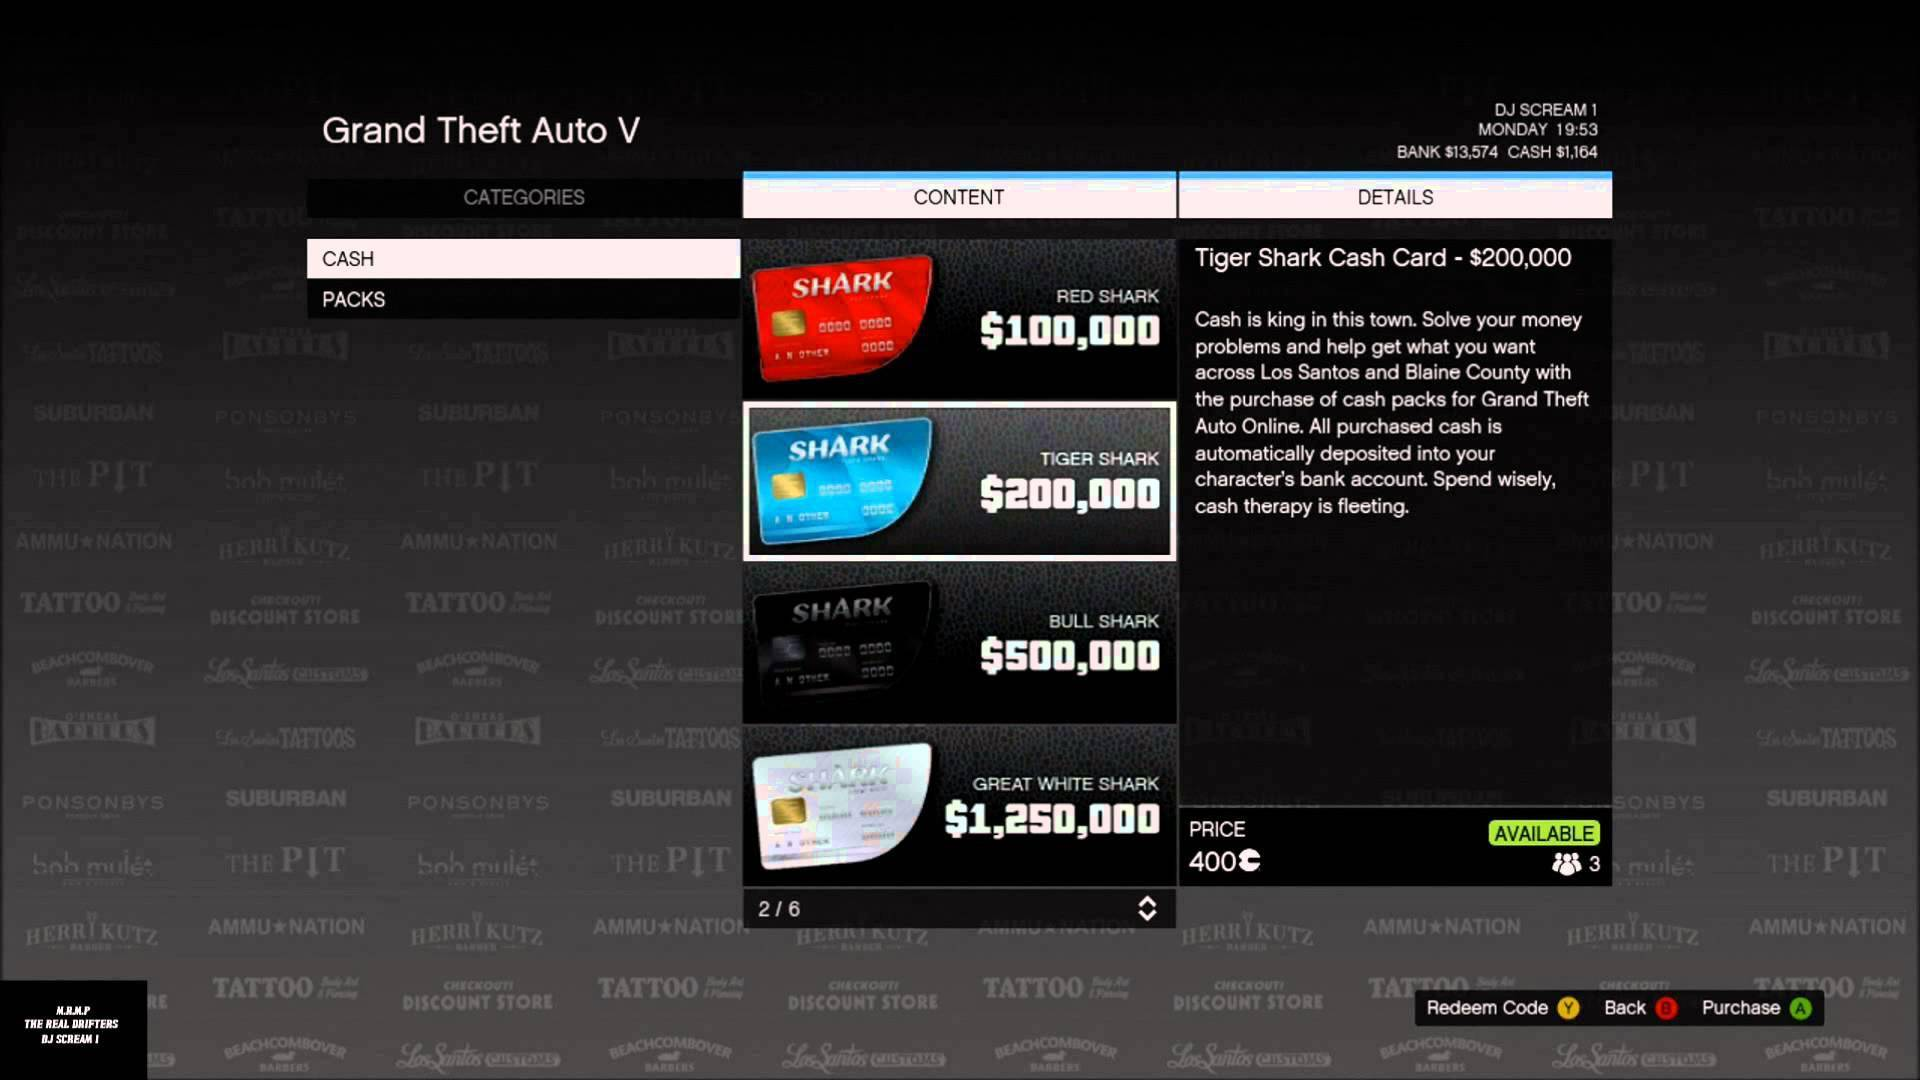 how to get great white shark cash card